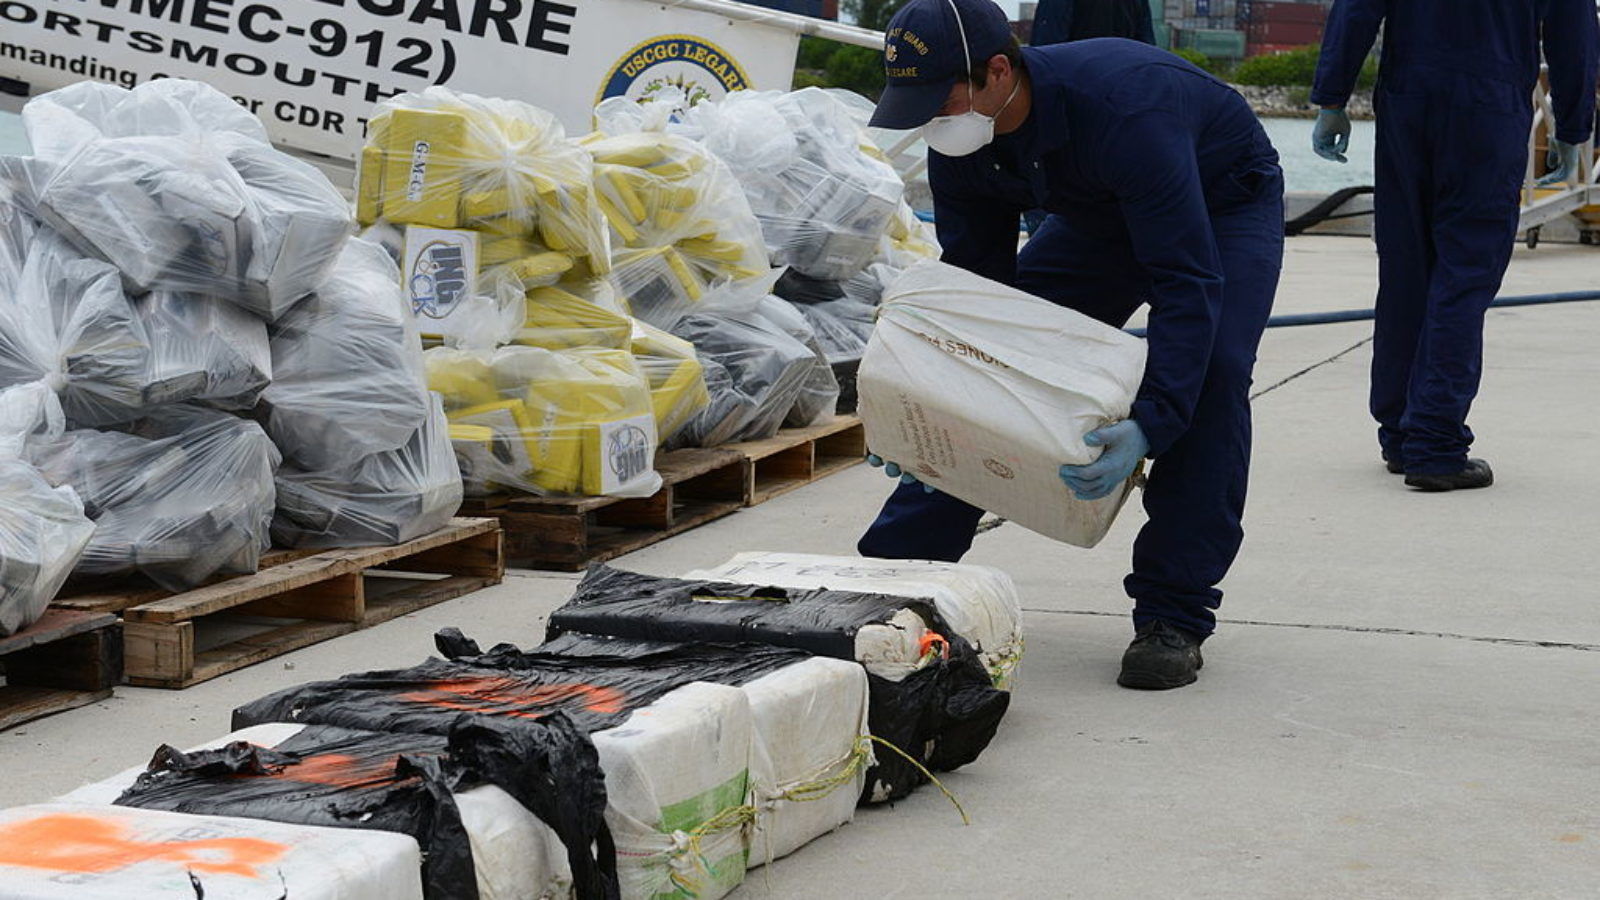 A U.S. Coast Guardsman assigned to the medium endurance cutter USCGC Legare (WMEC 912) stacks a bale of cocaine seized as part of Operation Martillo at Coast Guard Base Miami Beach, Fla.